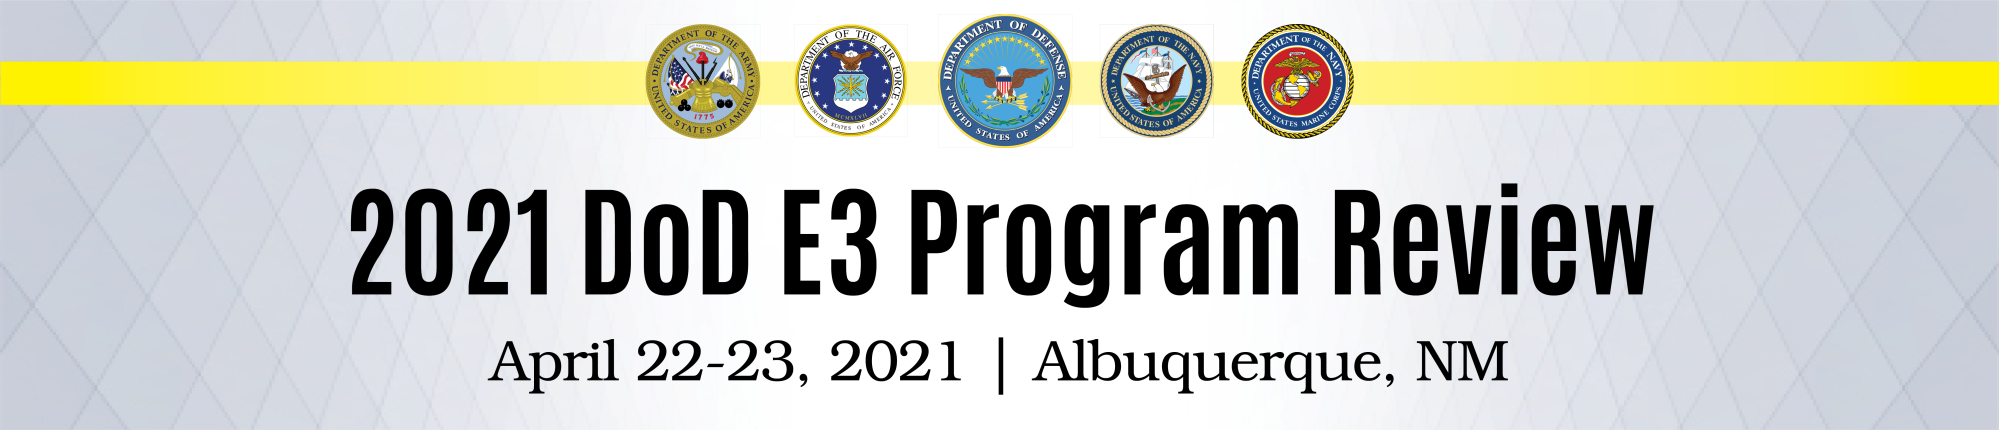 DoD Electromagnetic Environmental Effects (DoD E3) Program Review